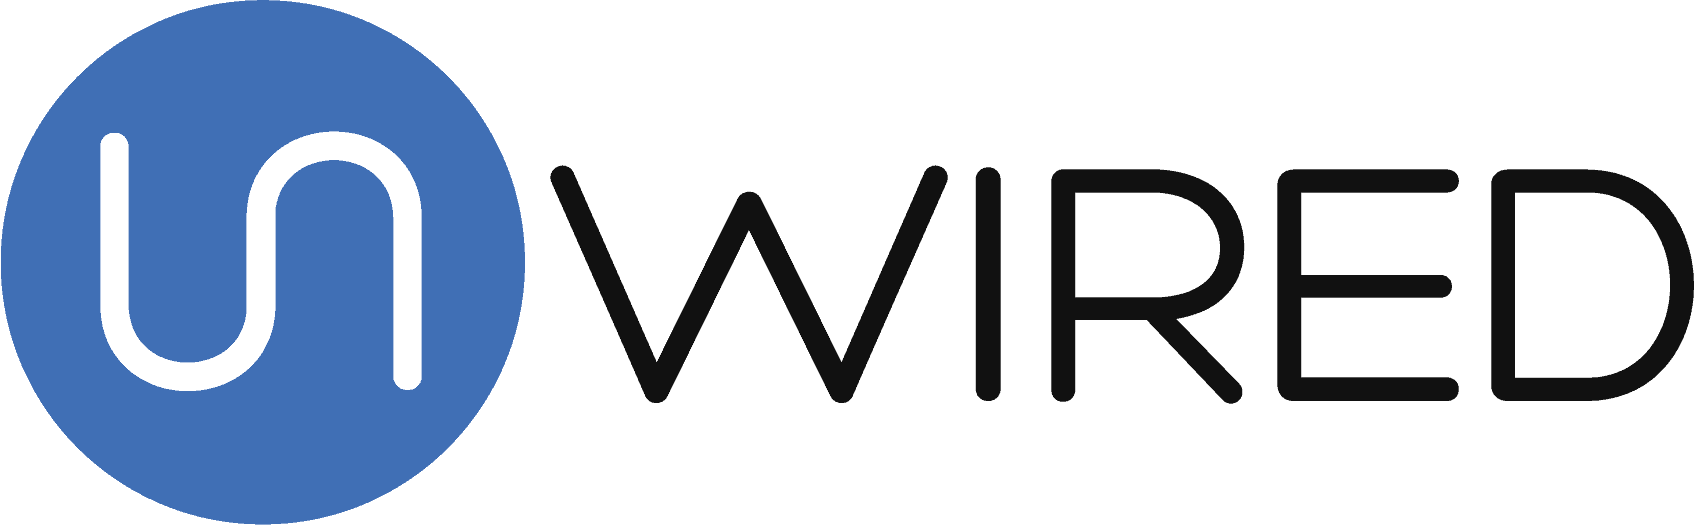 unWired Broadband logo.